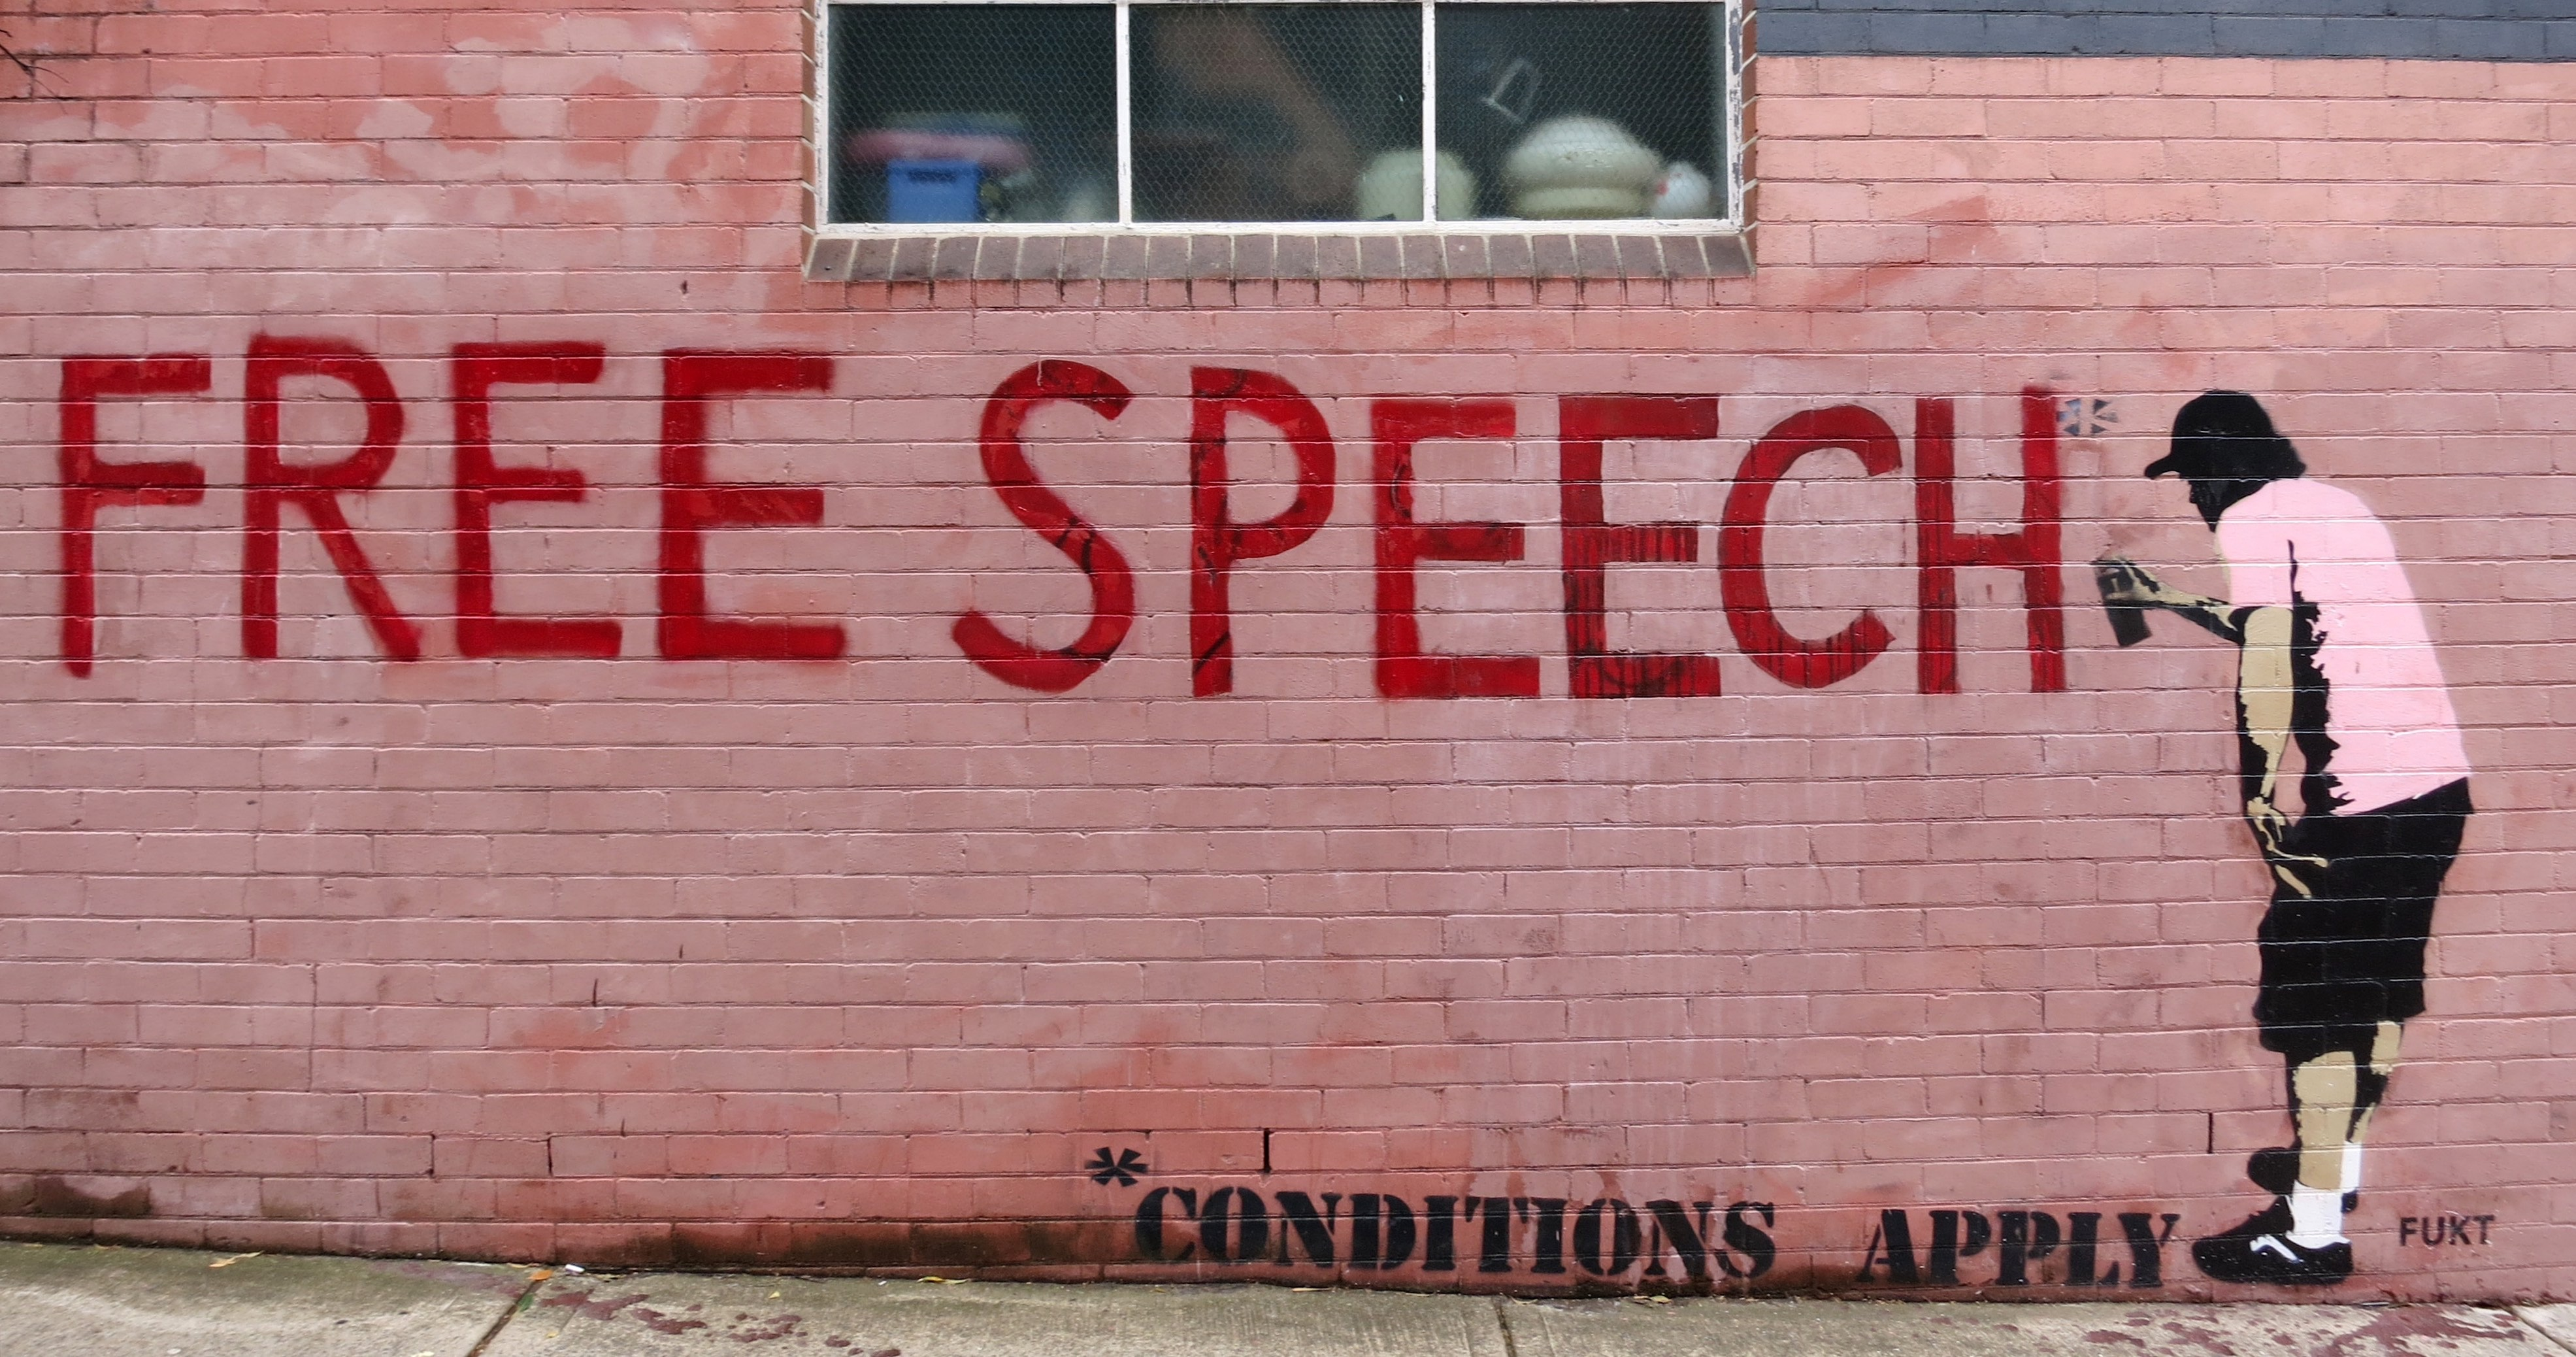 Photo of free speech graffiti